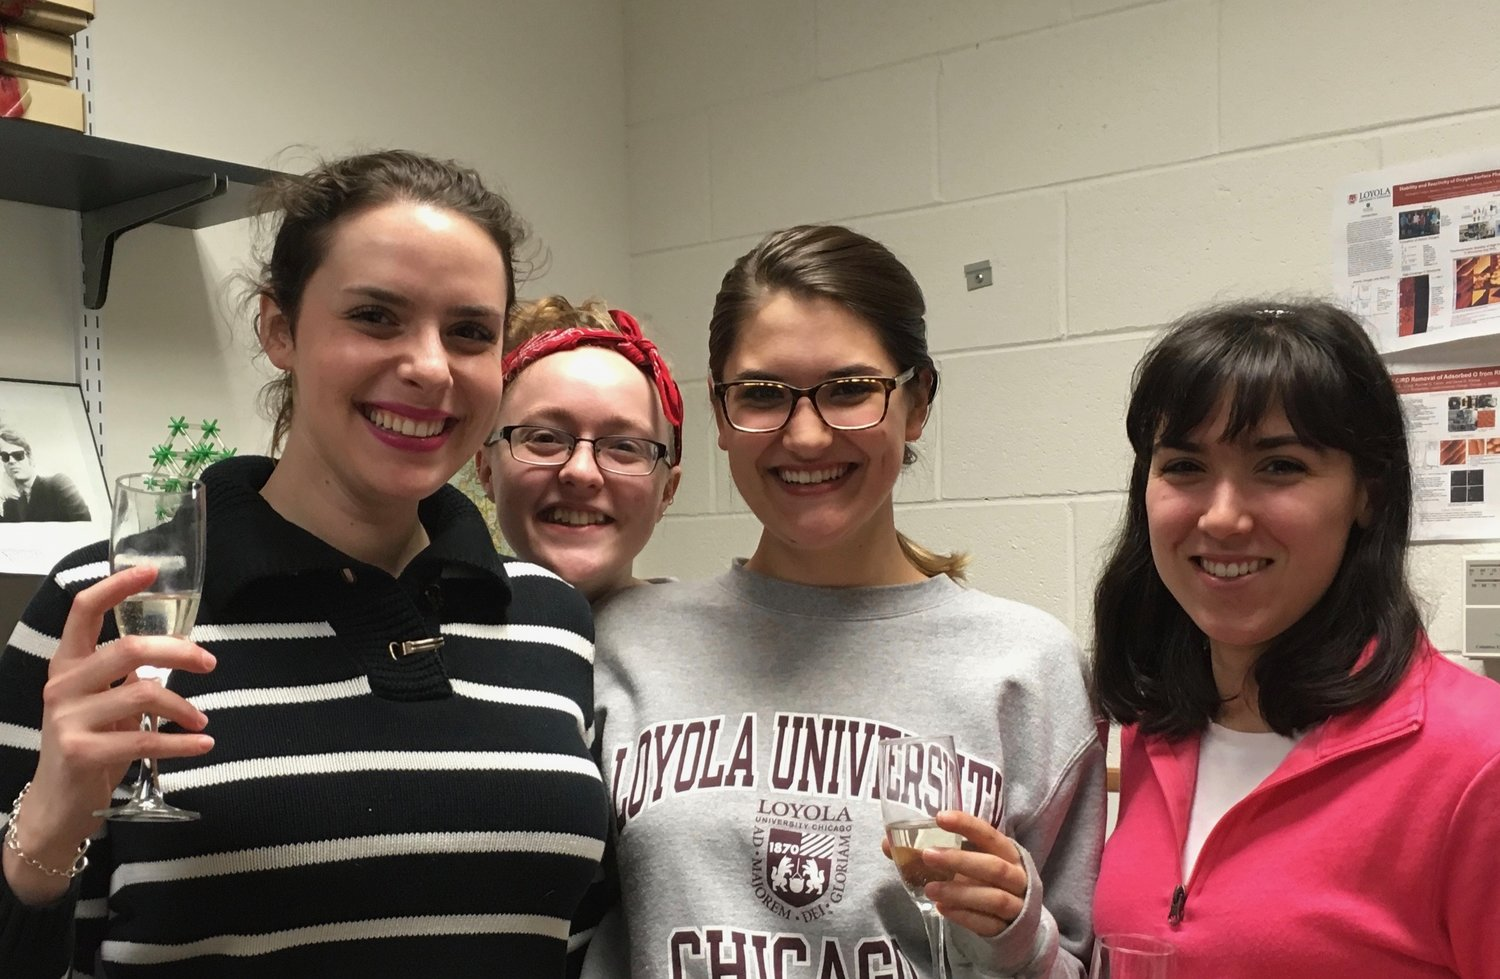 Killelea Lab at Loyola University Chicago